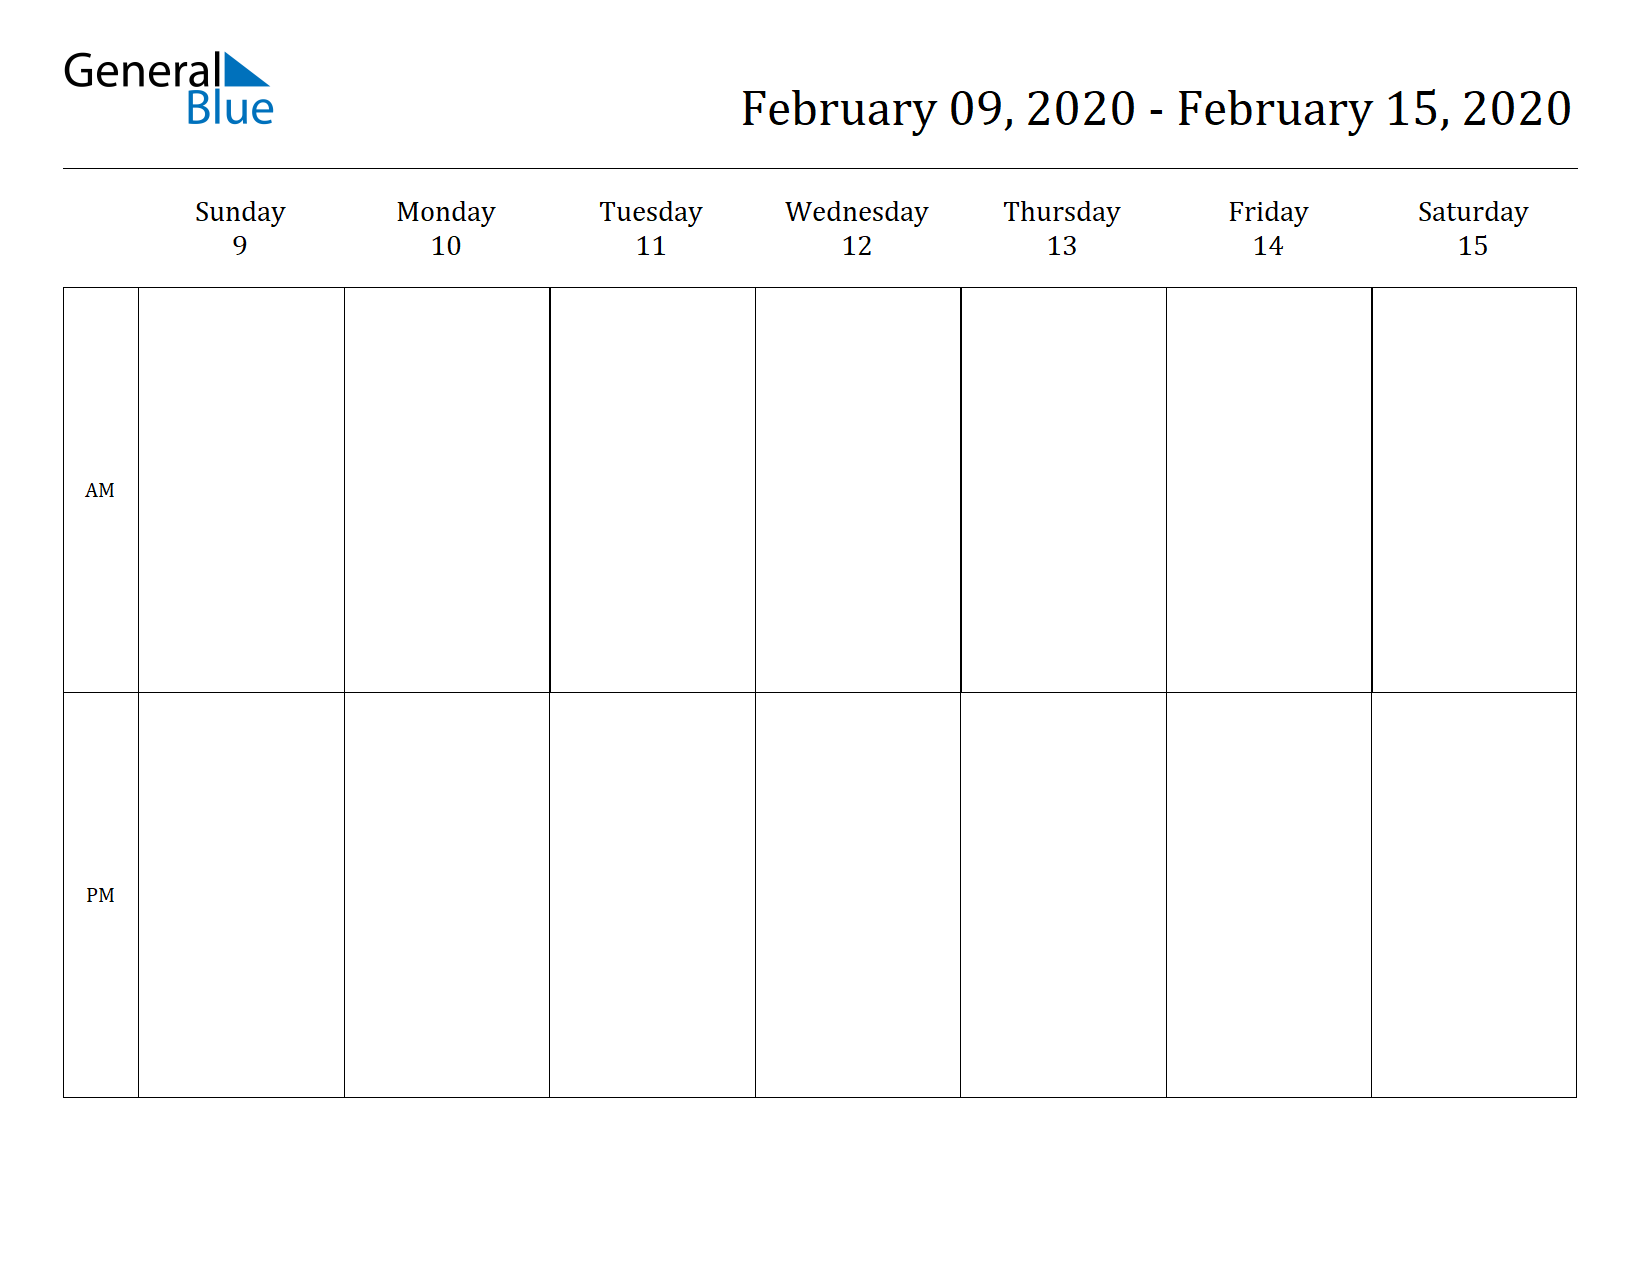 Weekly Calendar for Feb 09, 2020 to Feb 15, 2020